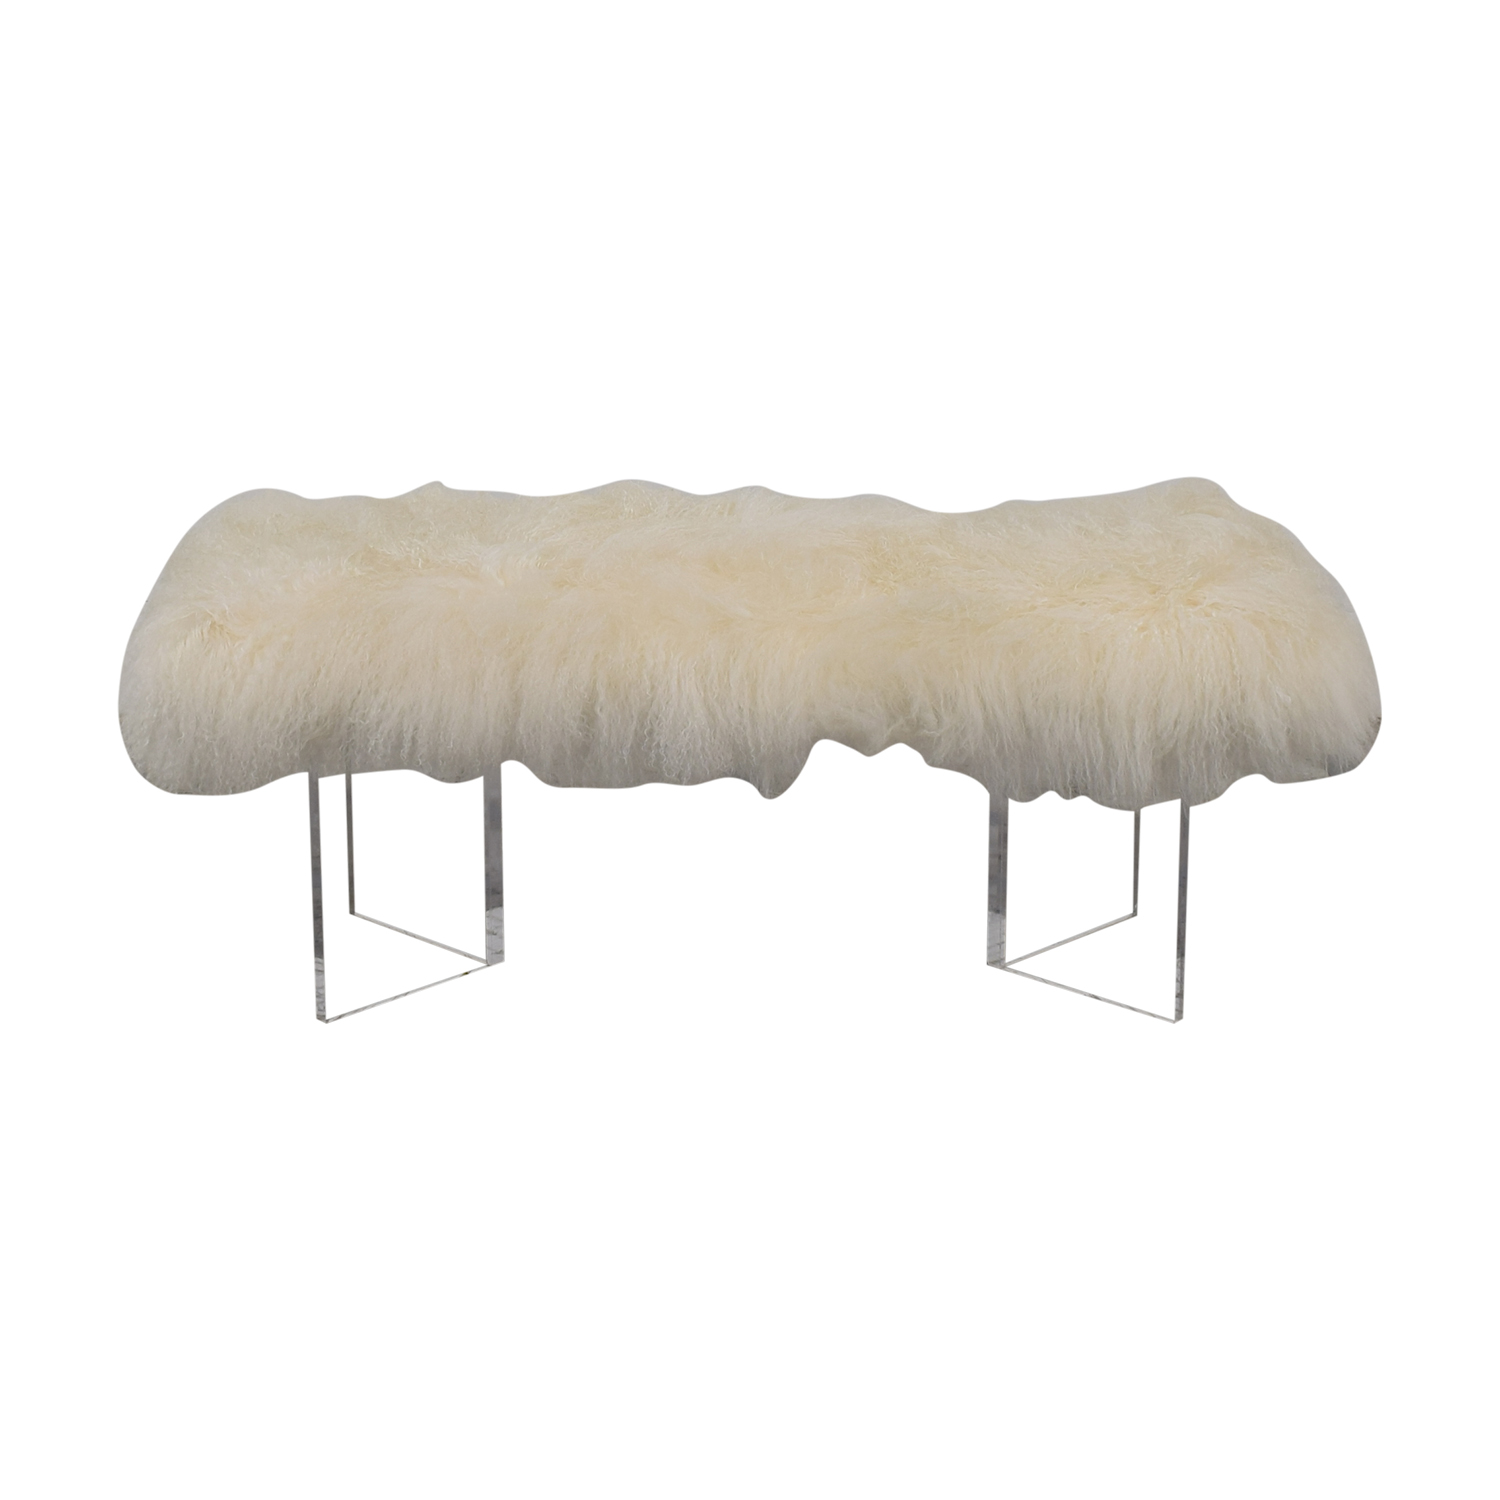 Calypso St Barth Calypso St. Barth Tibetan Fur Bench used